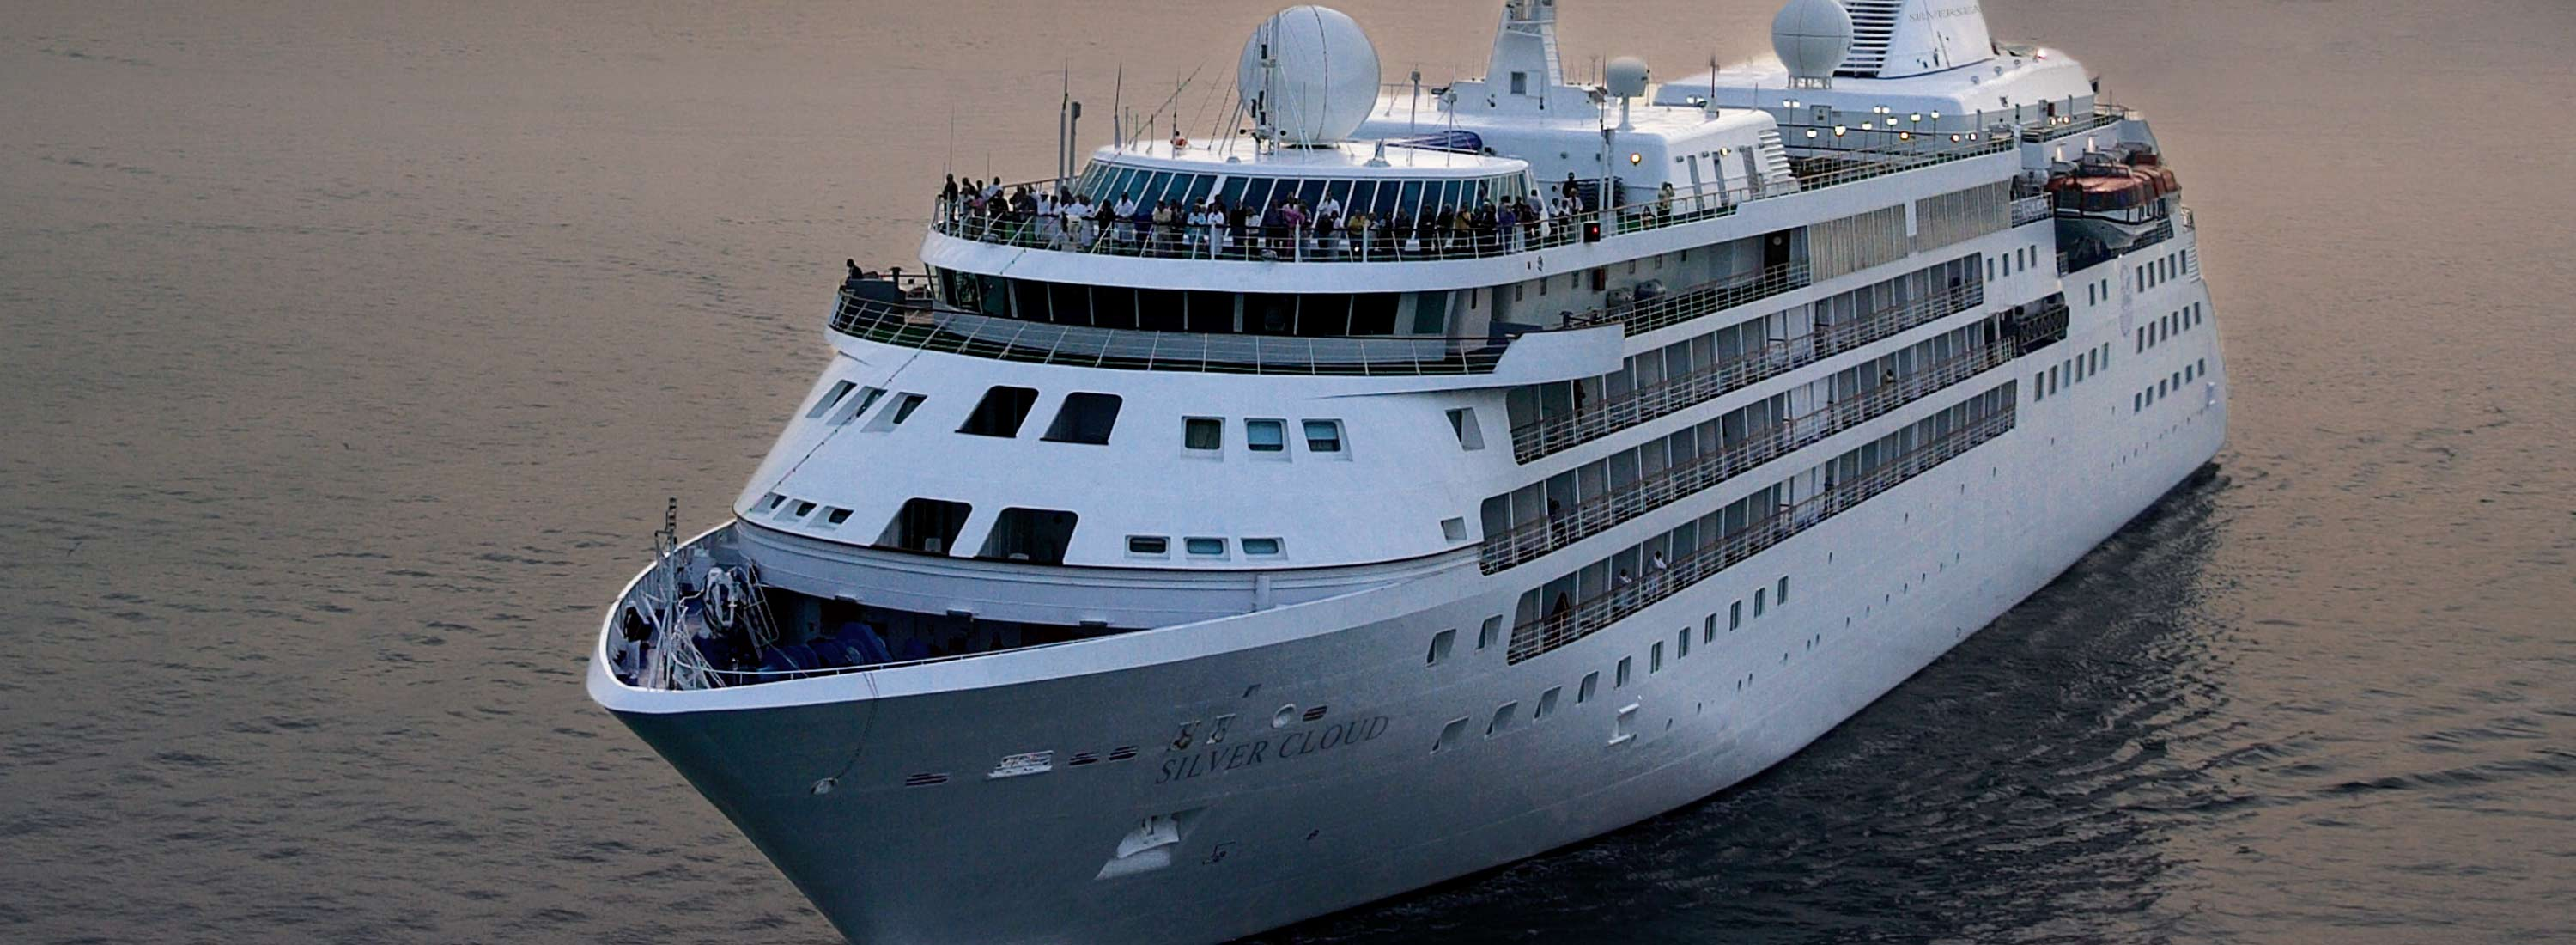 Cloud reviews silversea cruises reviews cruisemates - Luxury Cruise Connections Strong Silversea